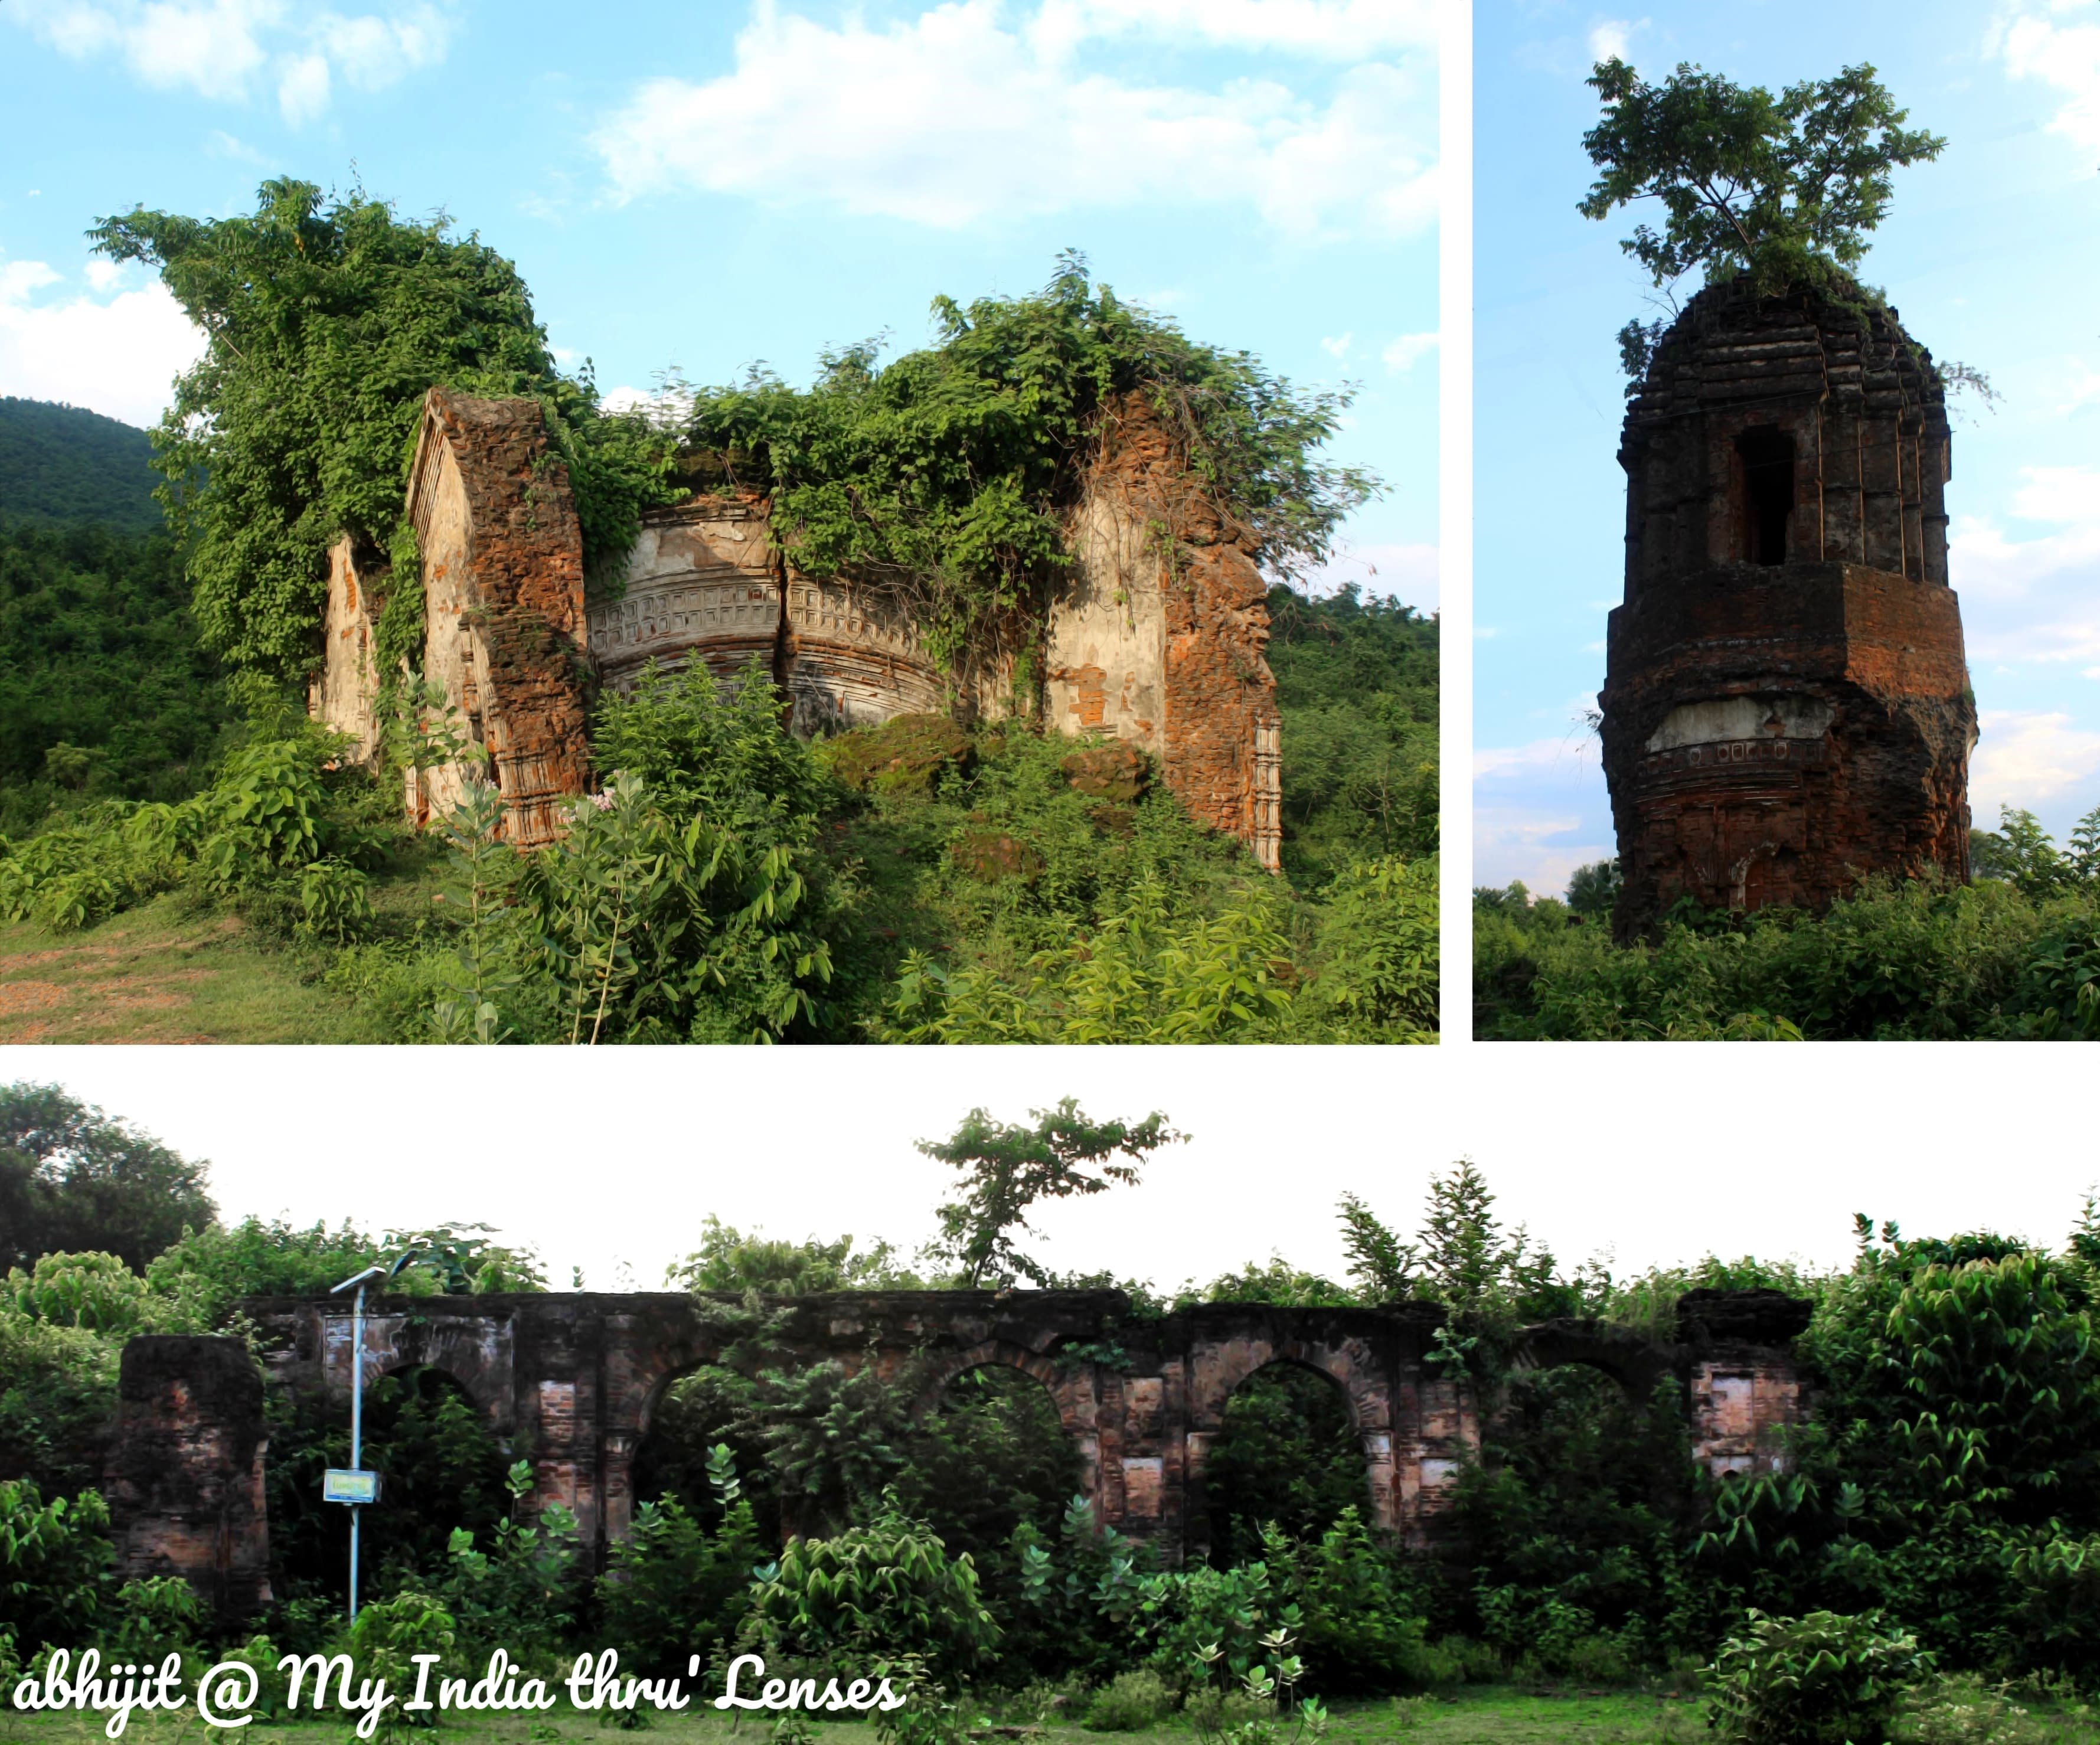 Ruins of the Fort. Top Left: A completely destroyed Temple. Top Right: A Watch Tower. Bottom: Palace Walls